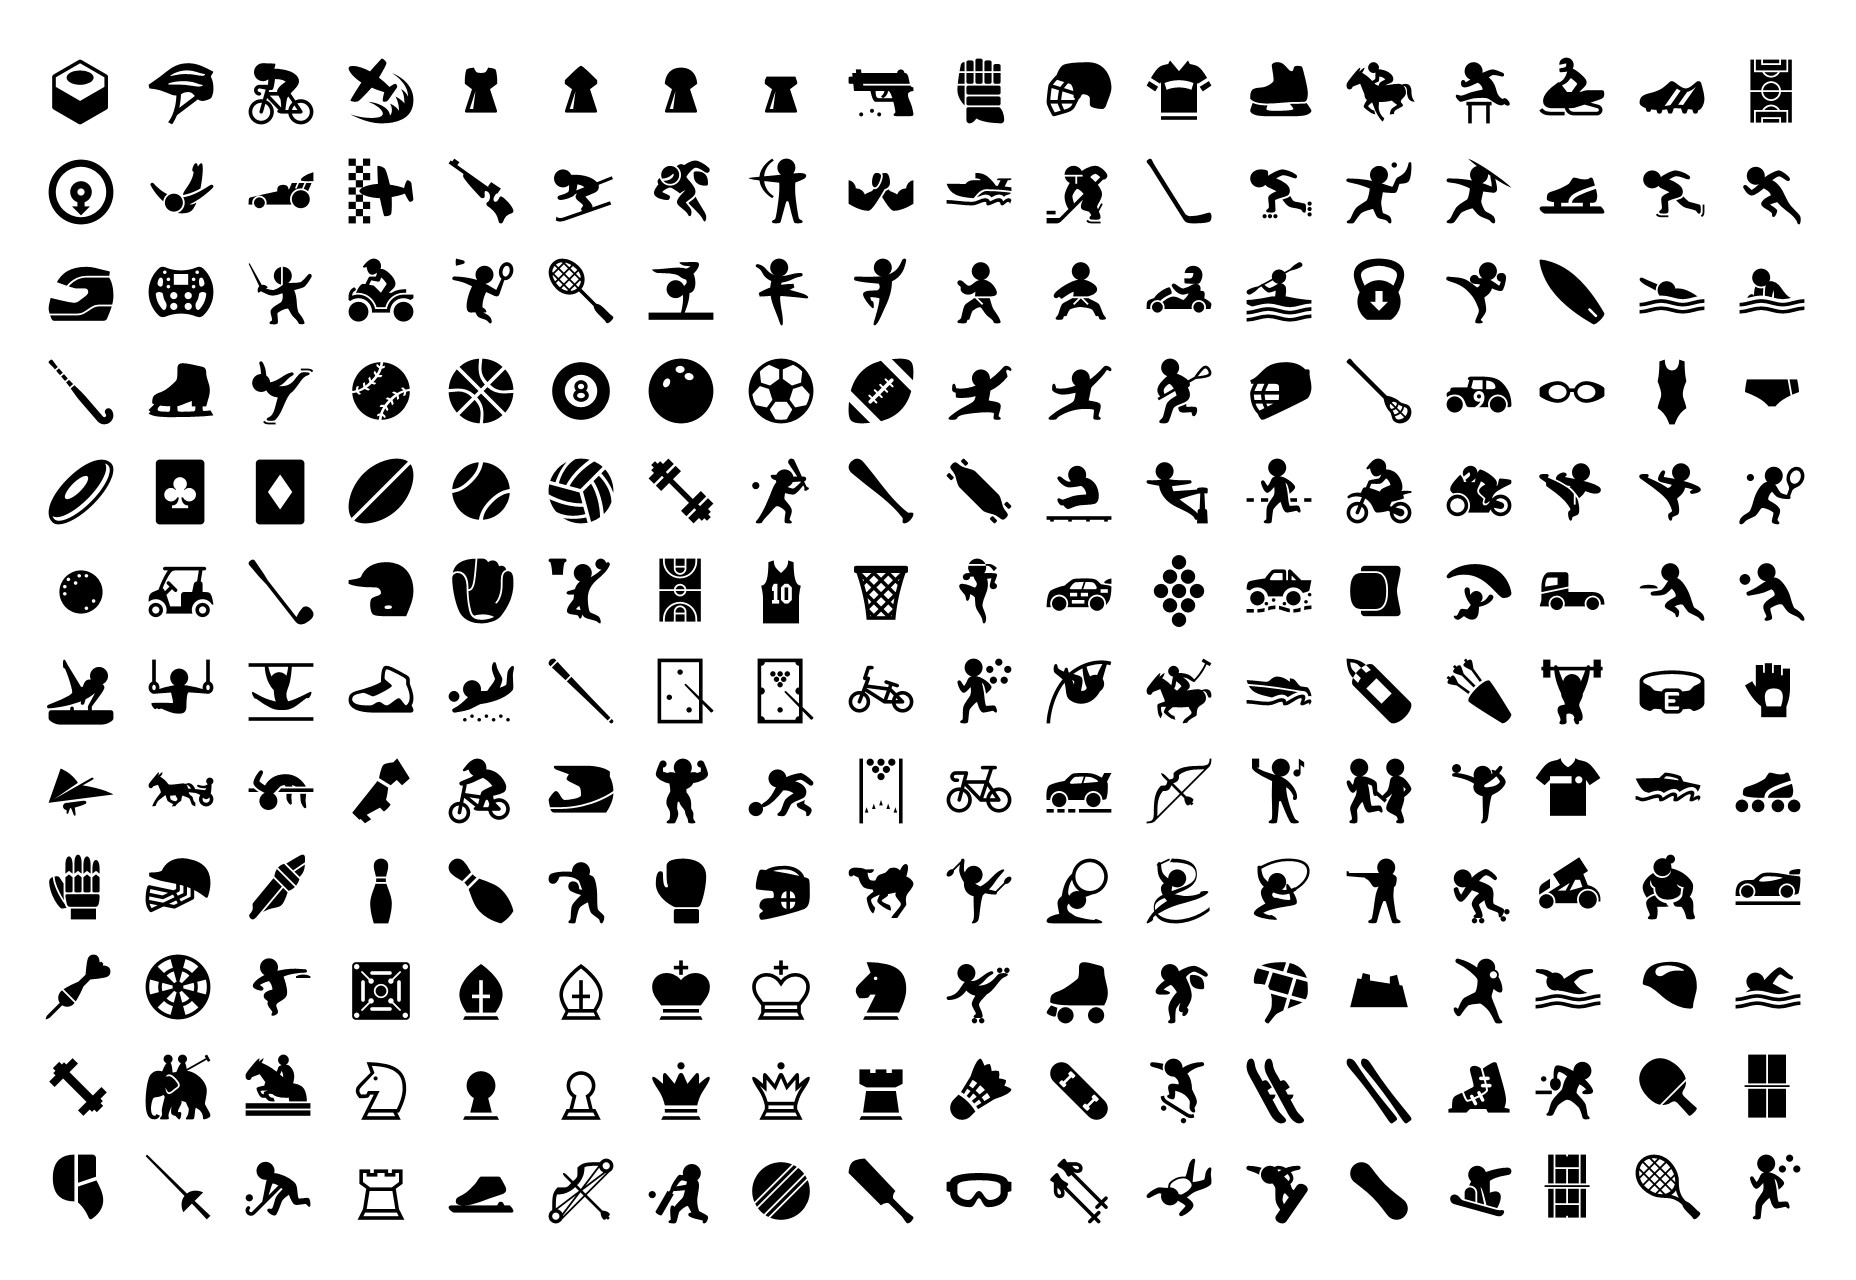 A Set of Over 5800 Filled Sport Icons